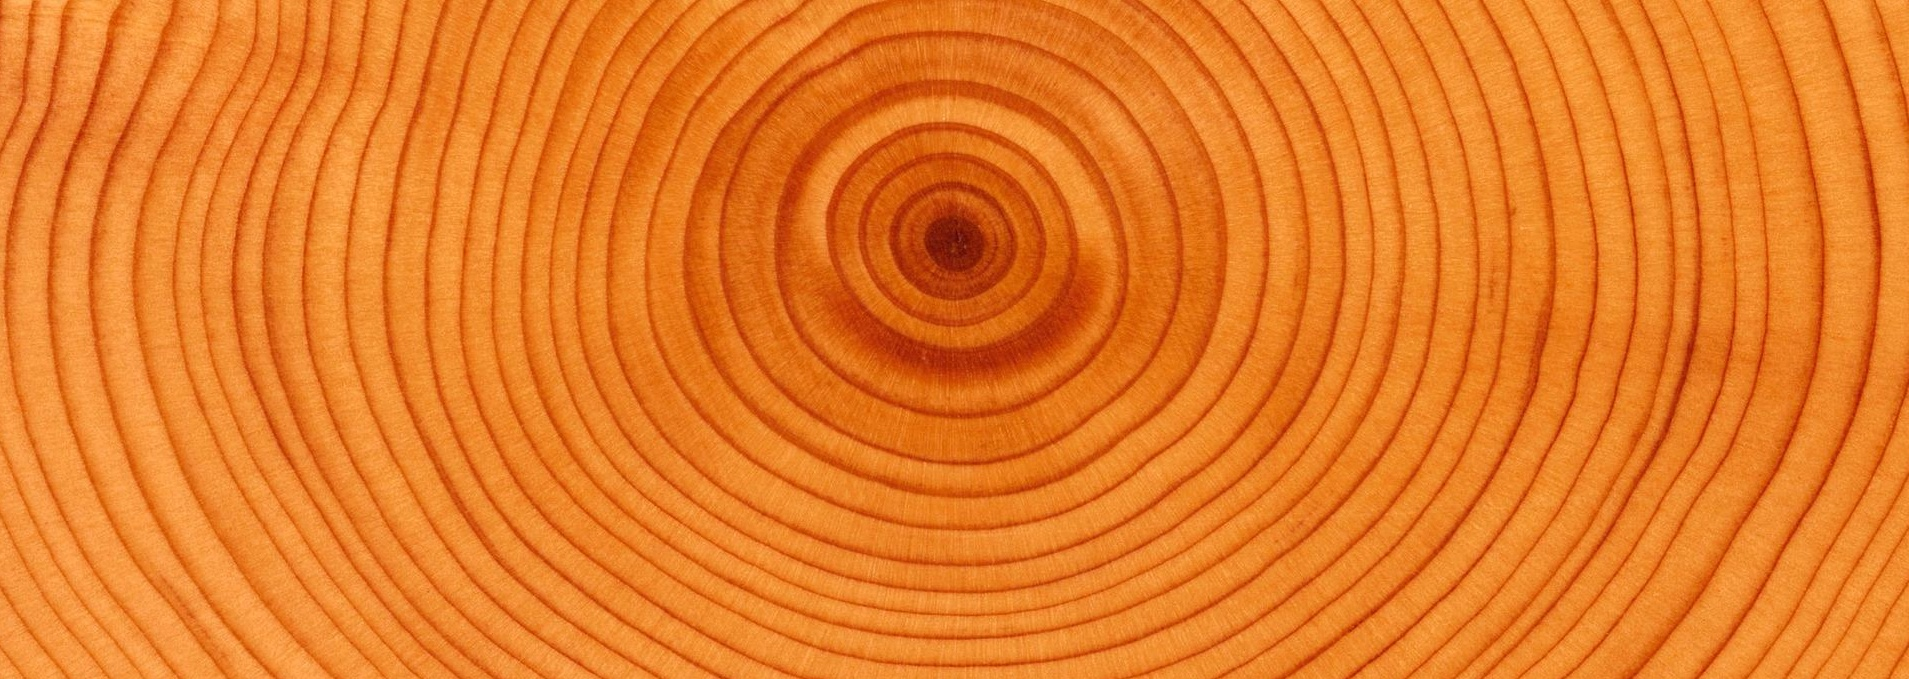 tree-rings, journal of wild culture ©2020